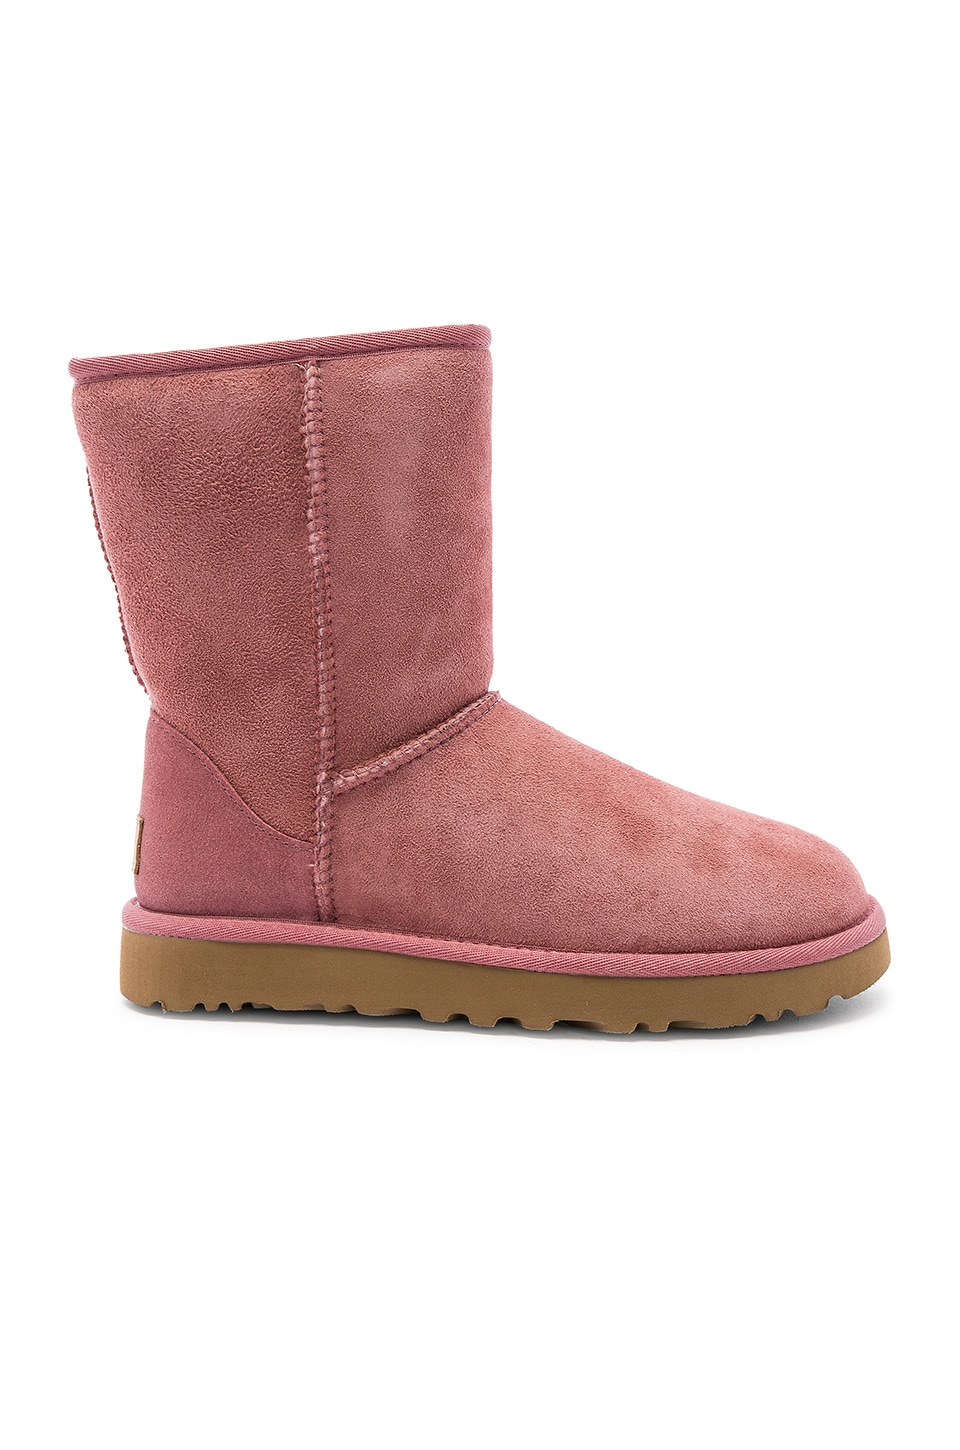 UGG Classic Short II Boot in Pink Dawn